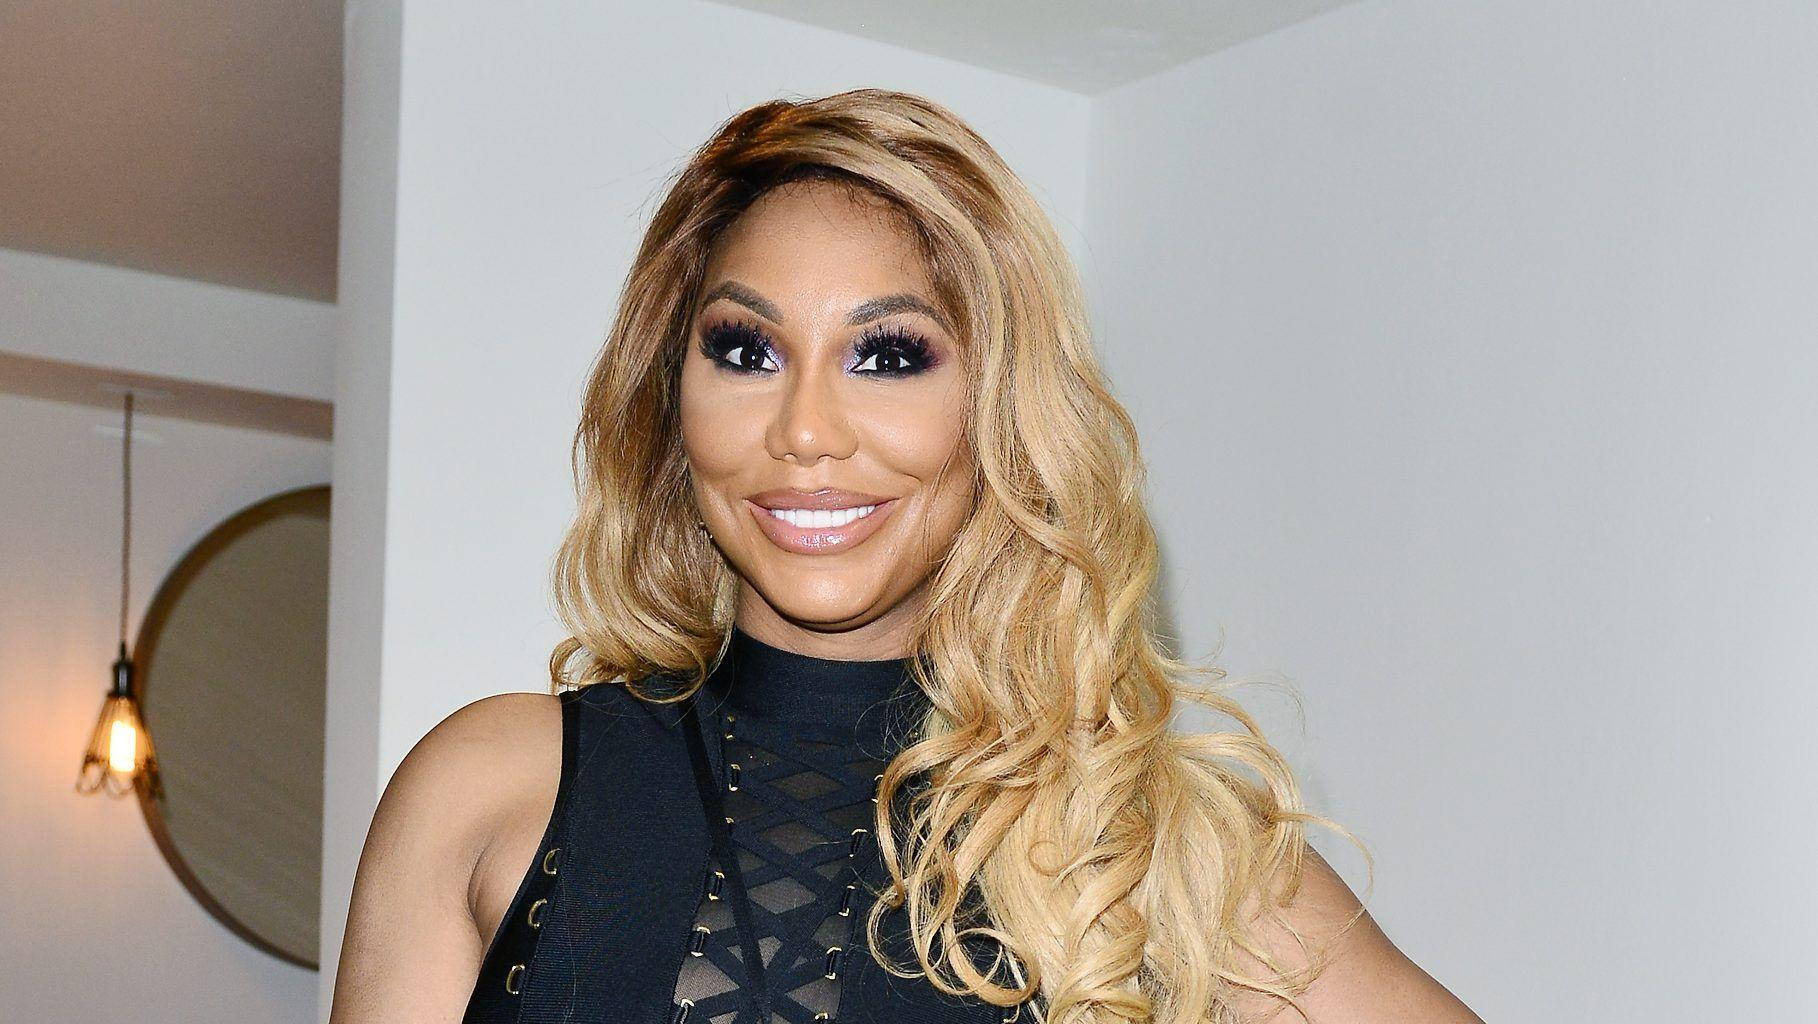 Tamar Braxton Opens Up About Her Scary Suicide Attempt In Lengthy Letter